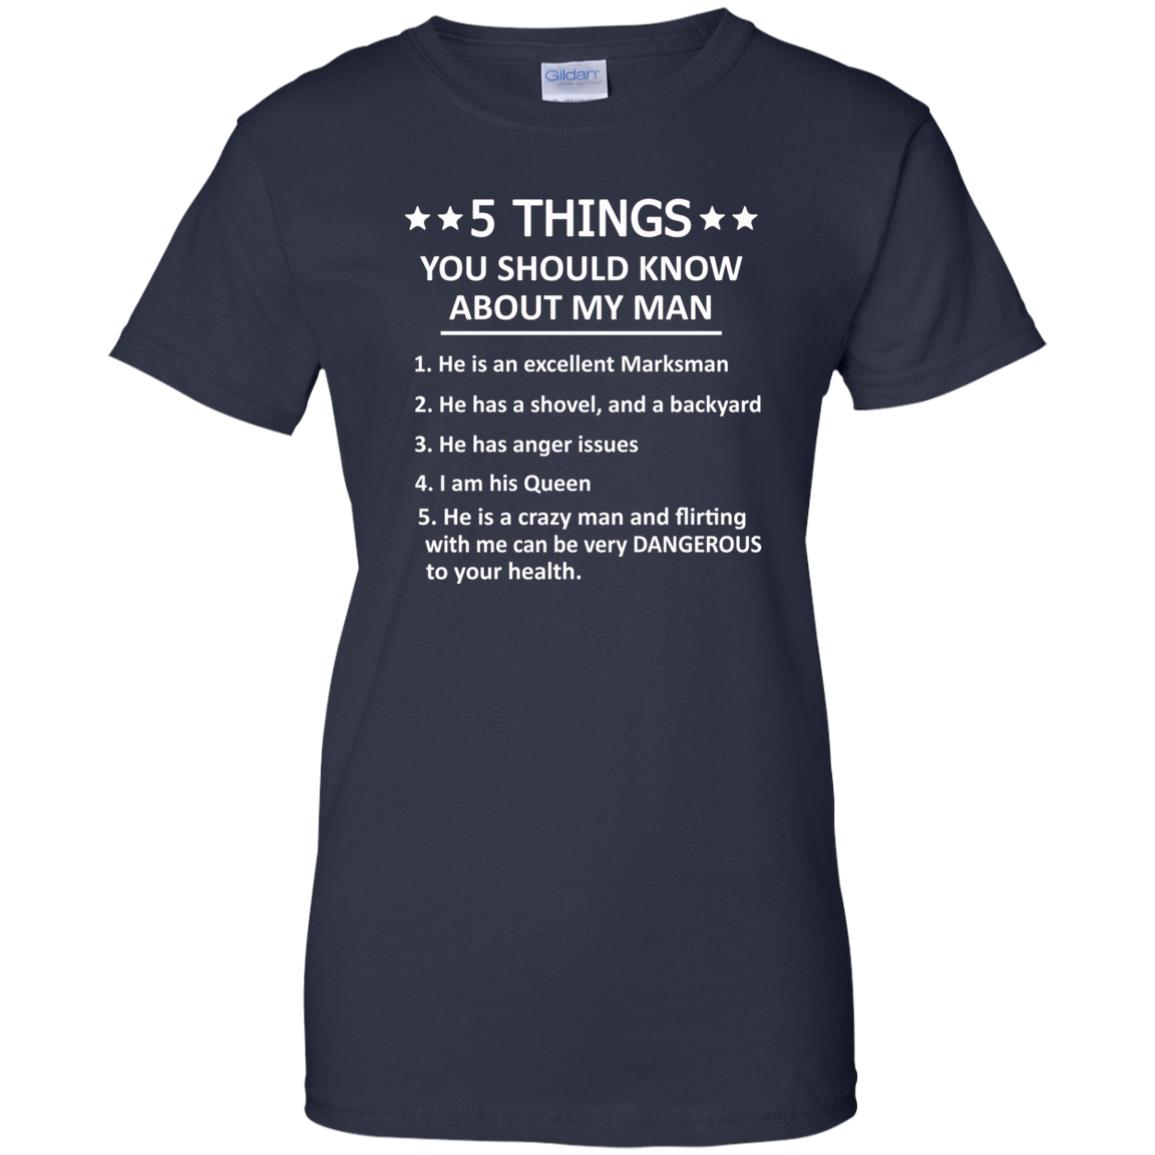 image 1328px 5 Things you should know about my man t shirt, hoodies, tank top